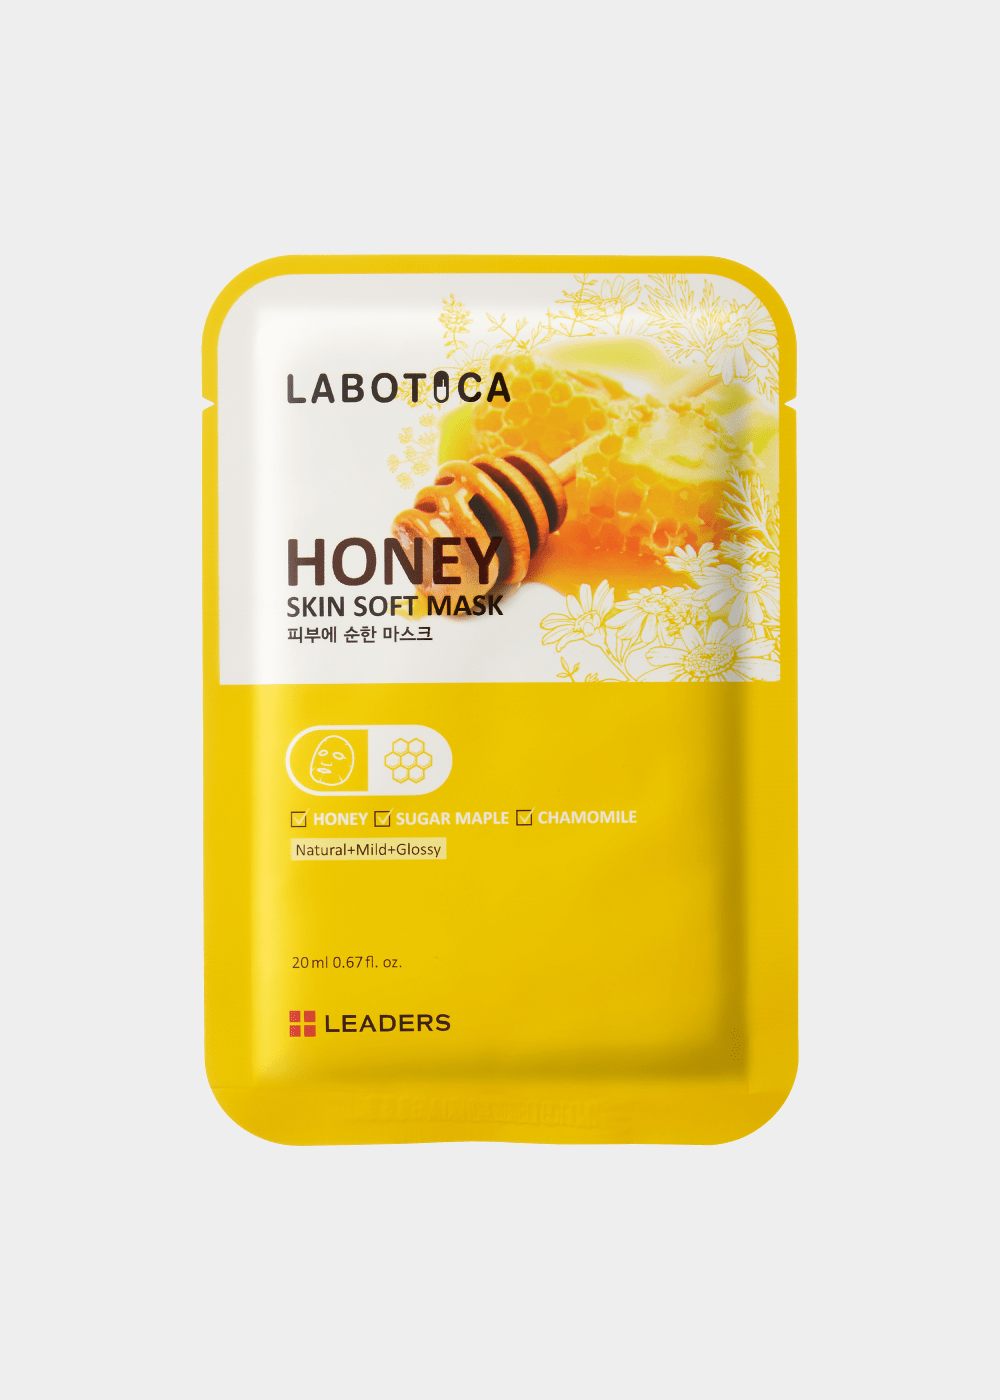 labotica-honey-editada